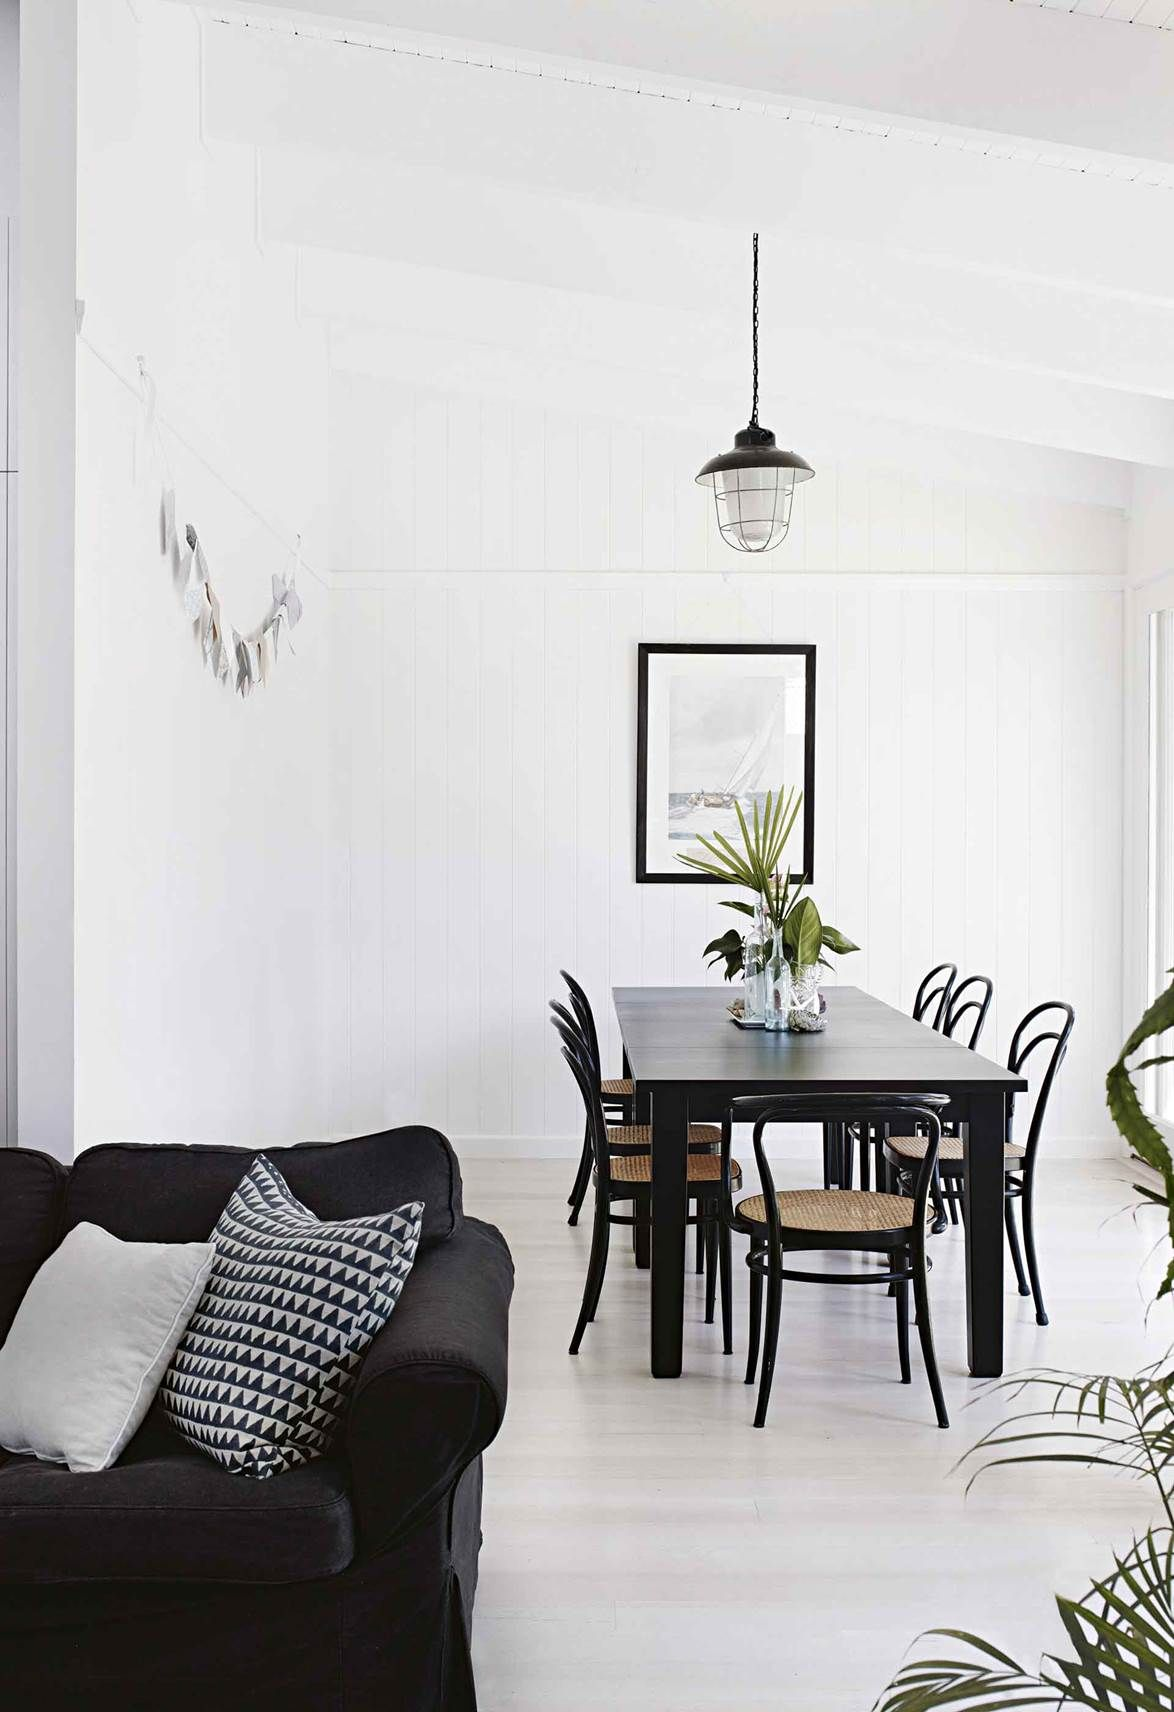 Coastal design meets Art Deco style in a weatherboard house